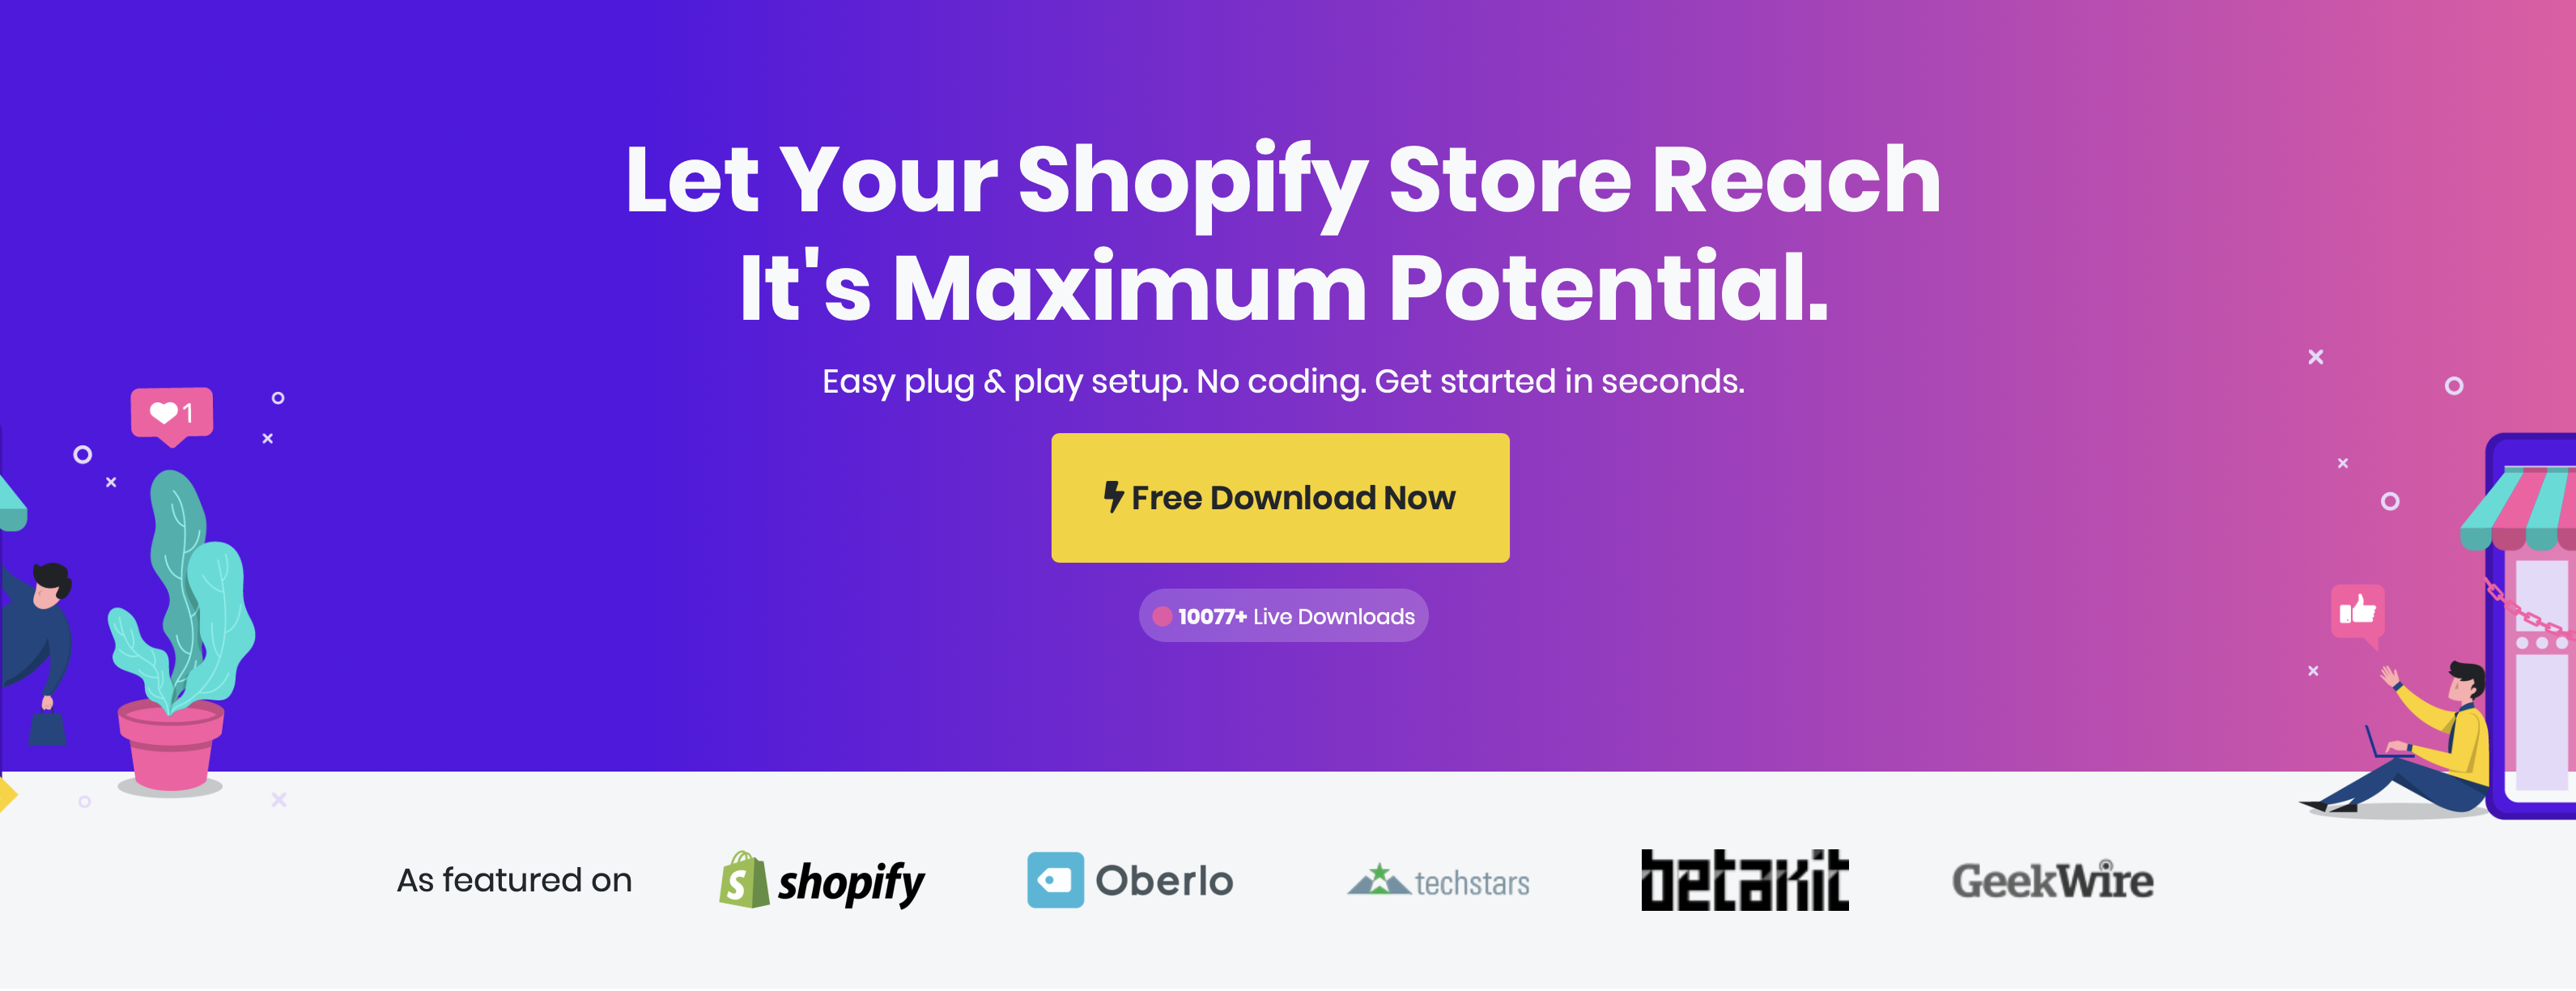 8 Best free Shopify themes for 2021